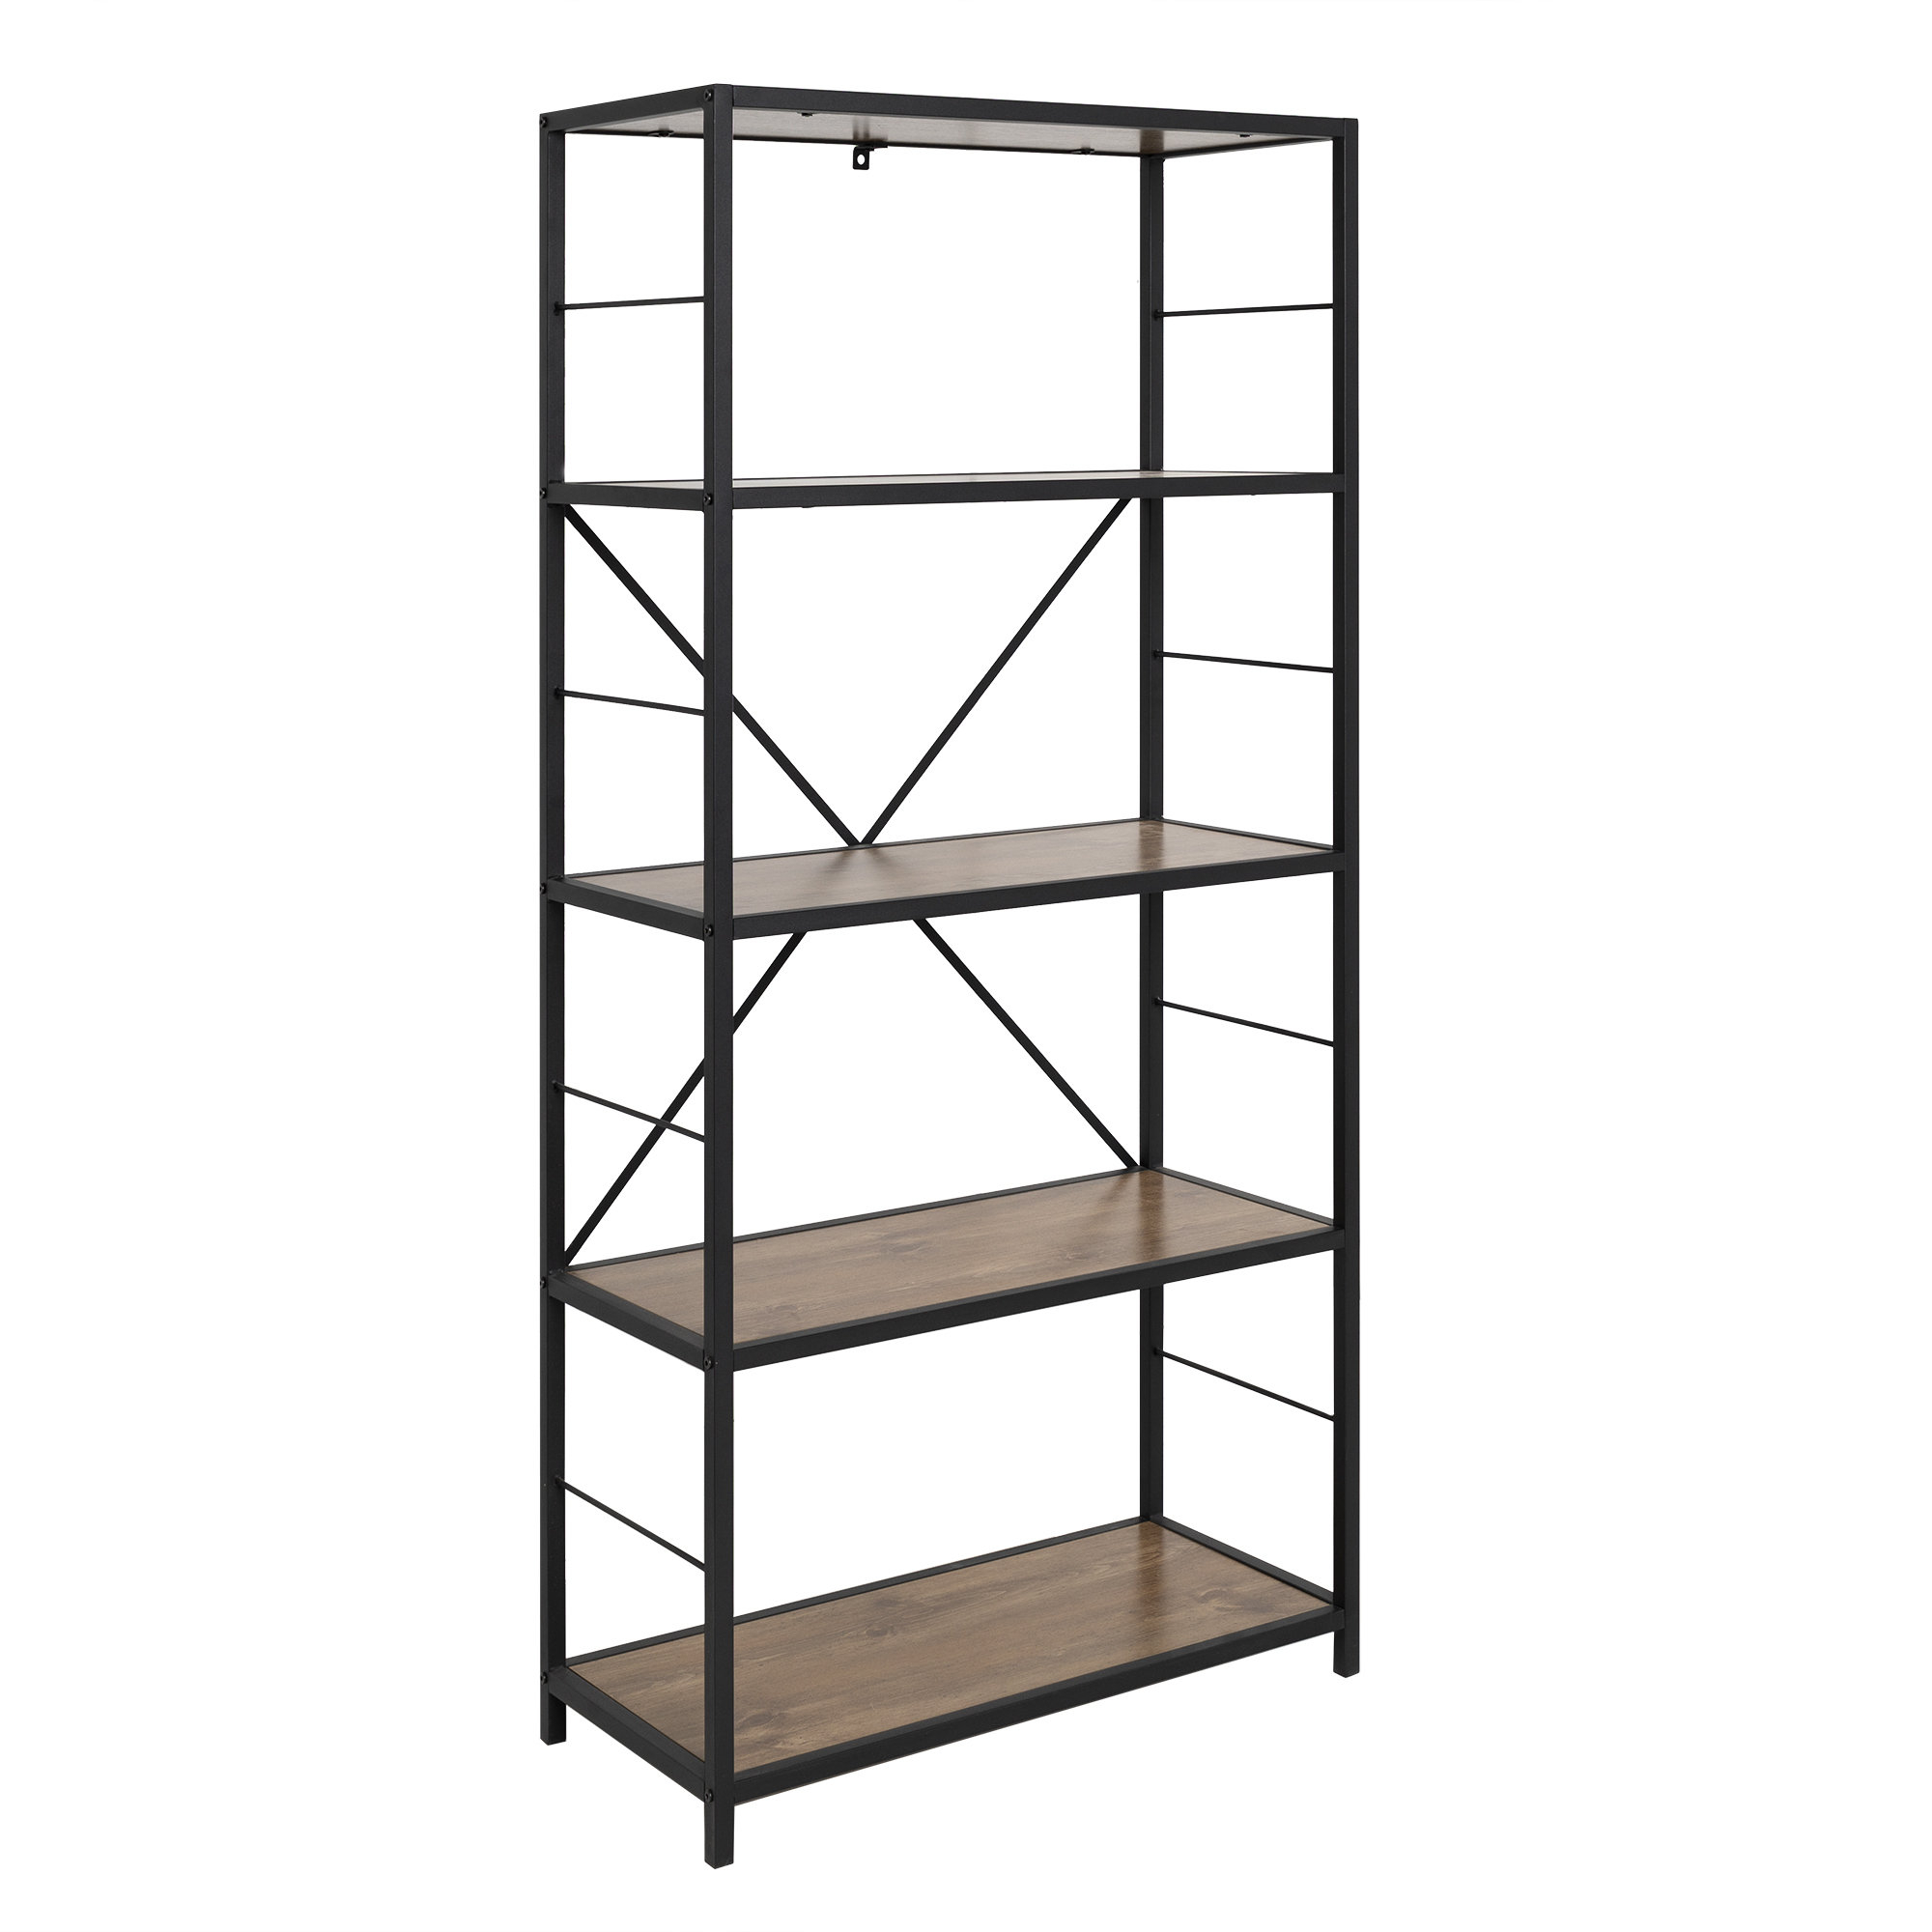 Trendy Caldwell Etagere Bookcases Intended For Greyleigh Macon Etagere Bookcase (View 14 of 20)